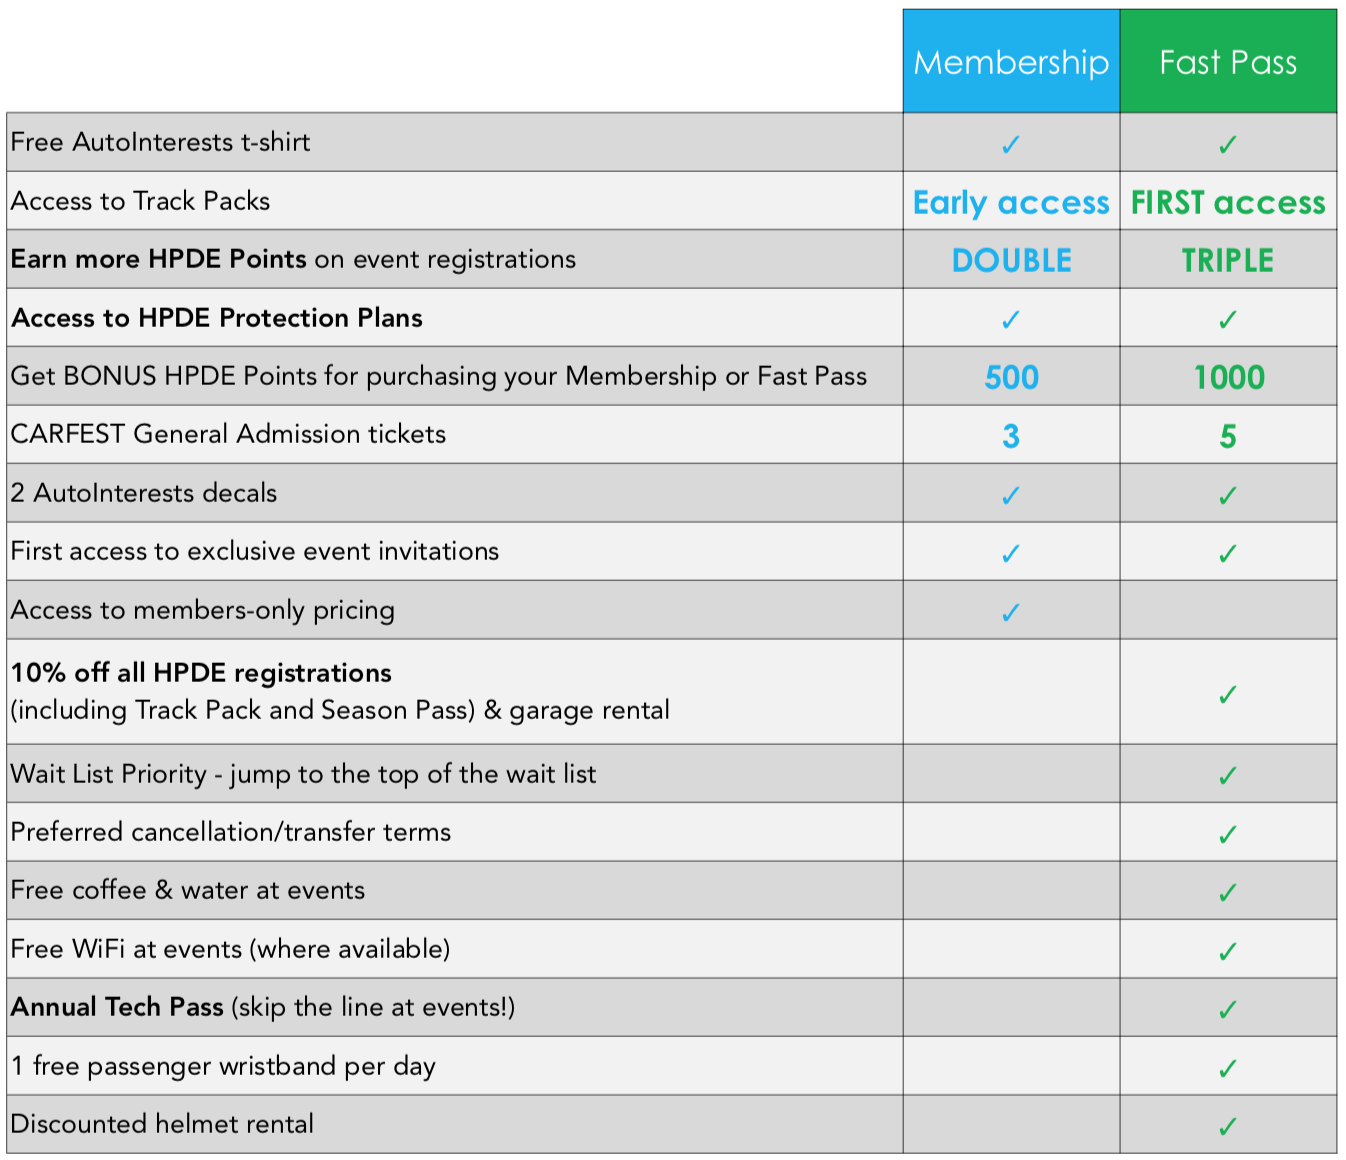 2020 Membership and Fast Pass Comparison